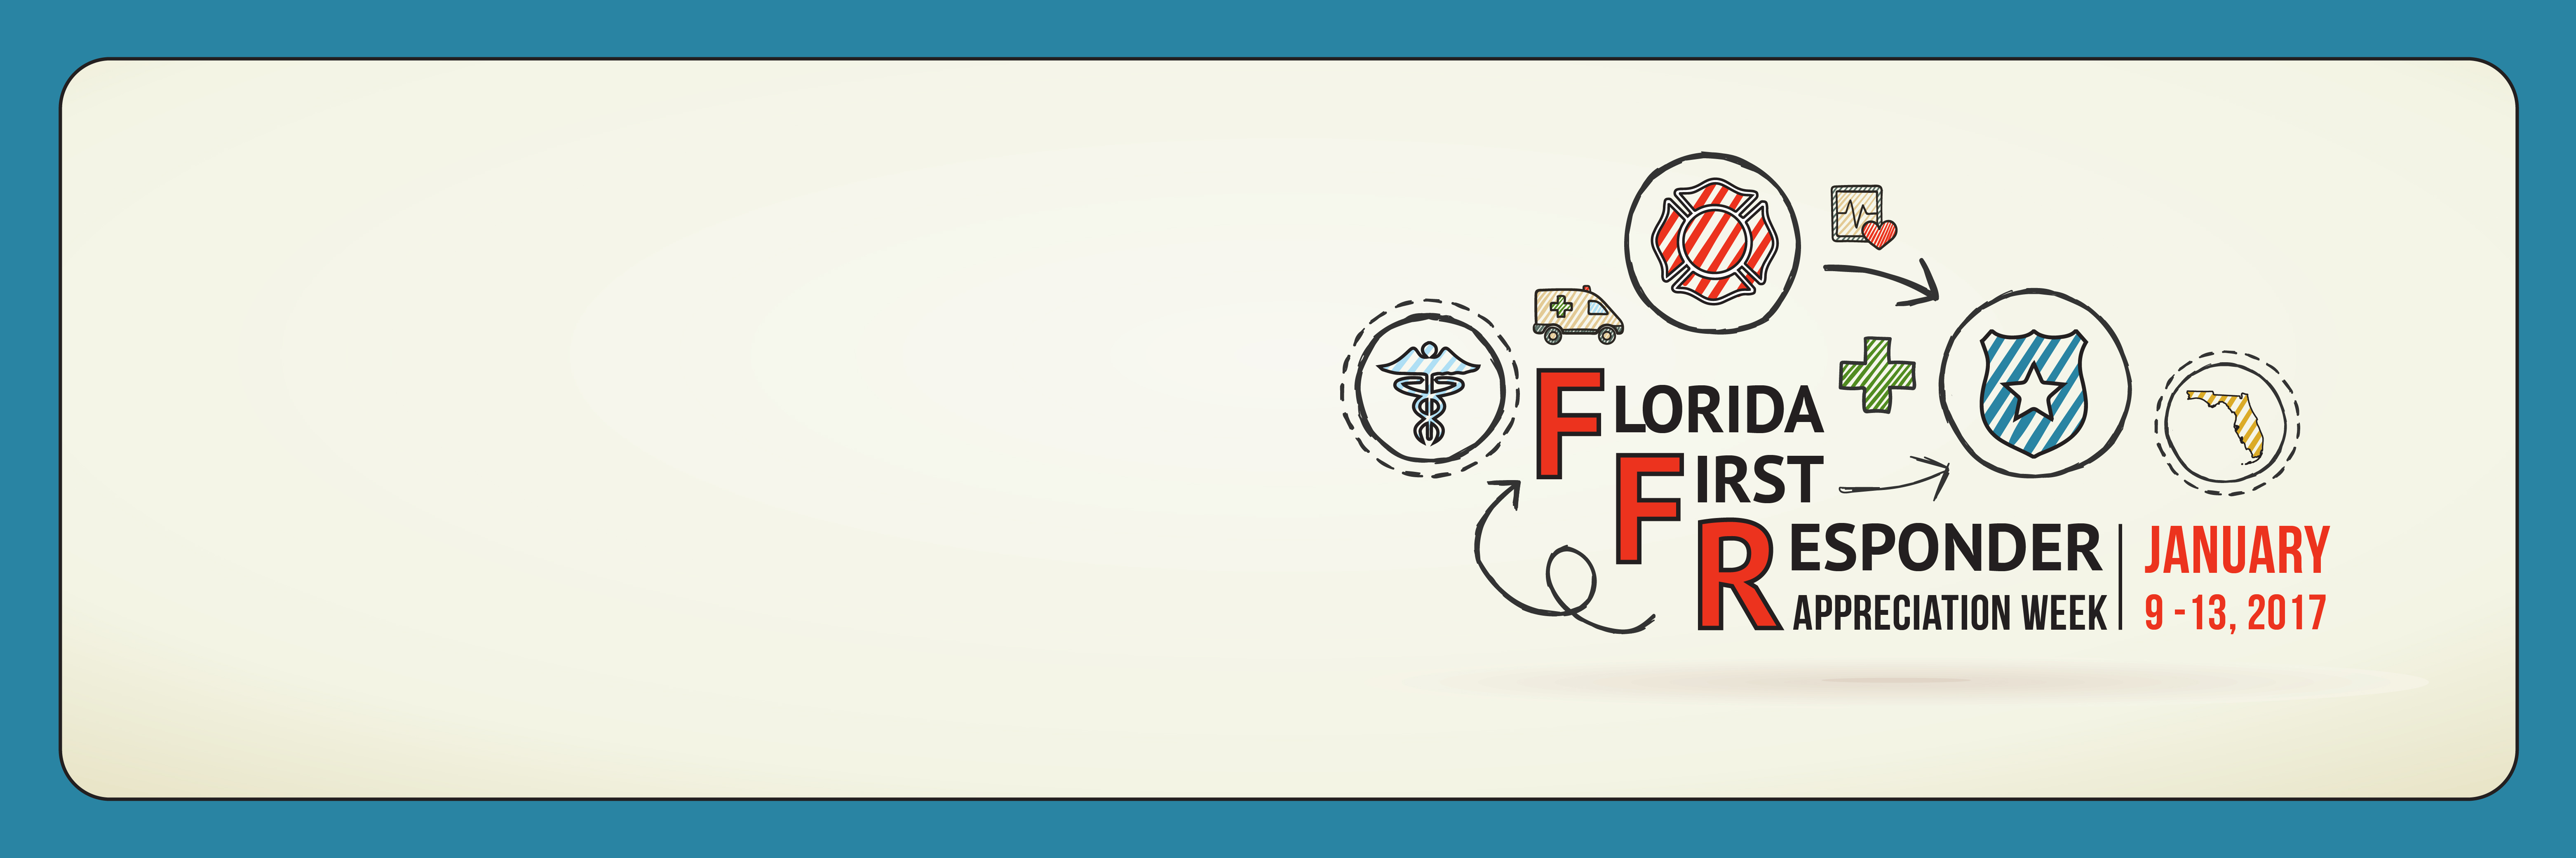 Florida first responder appreciation week twitter cover photo 1betcityfo Image collections